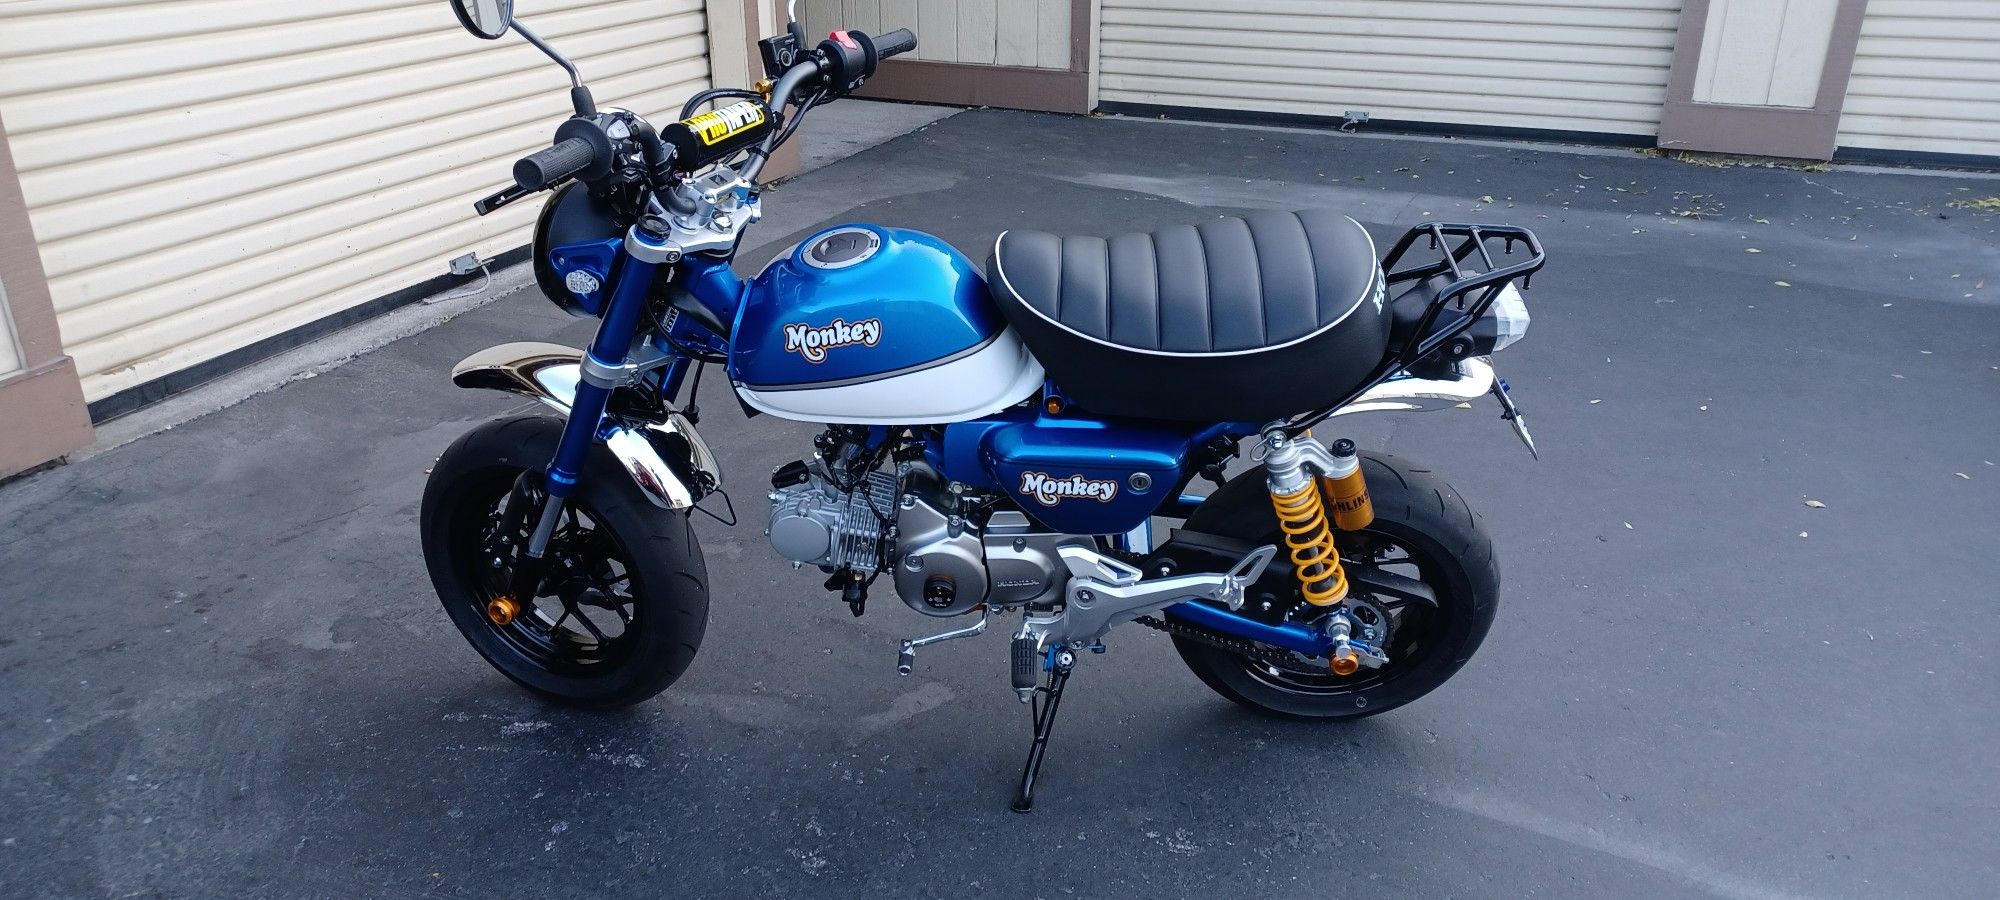 Honda Monkey Powercomander 5 And Auto Tune And A Air Intake Only Not A Bike